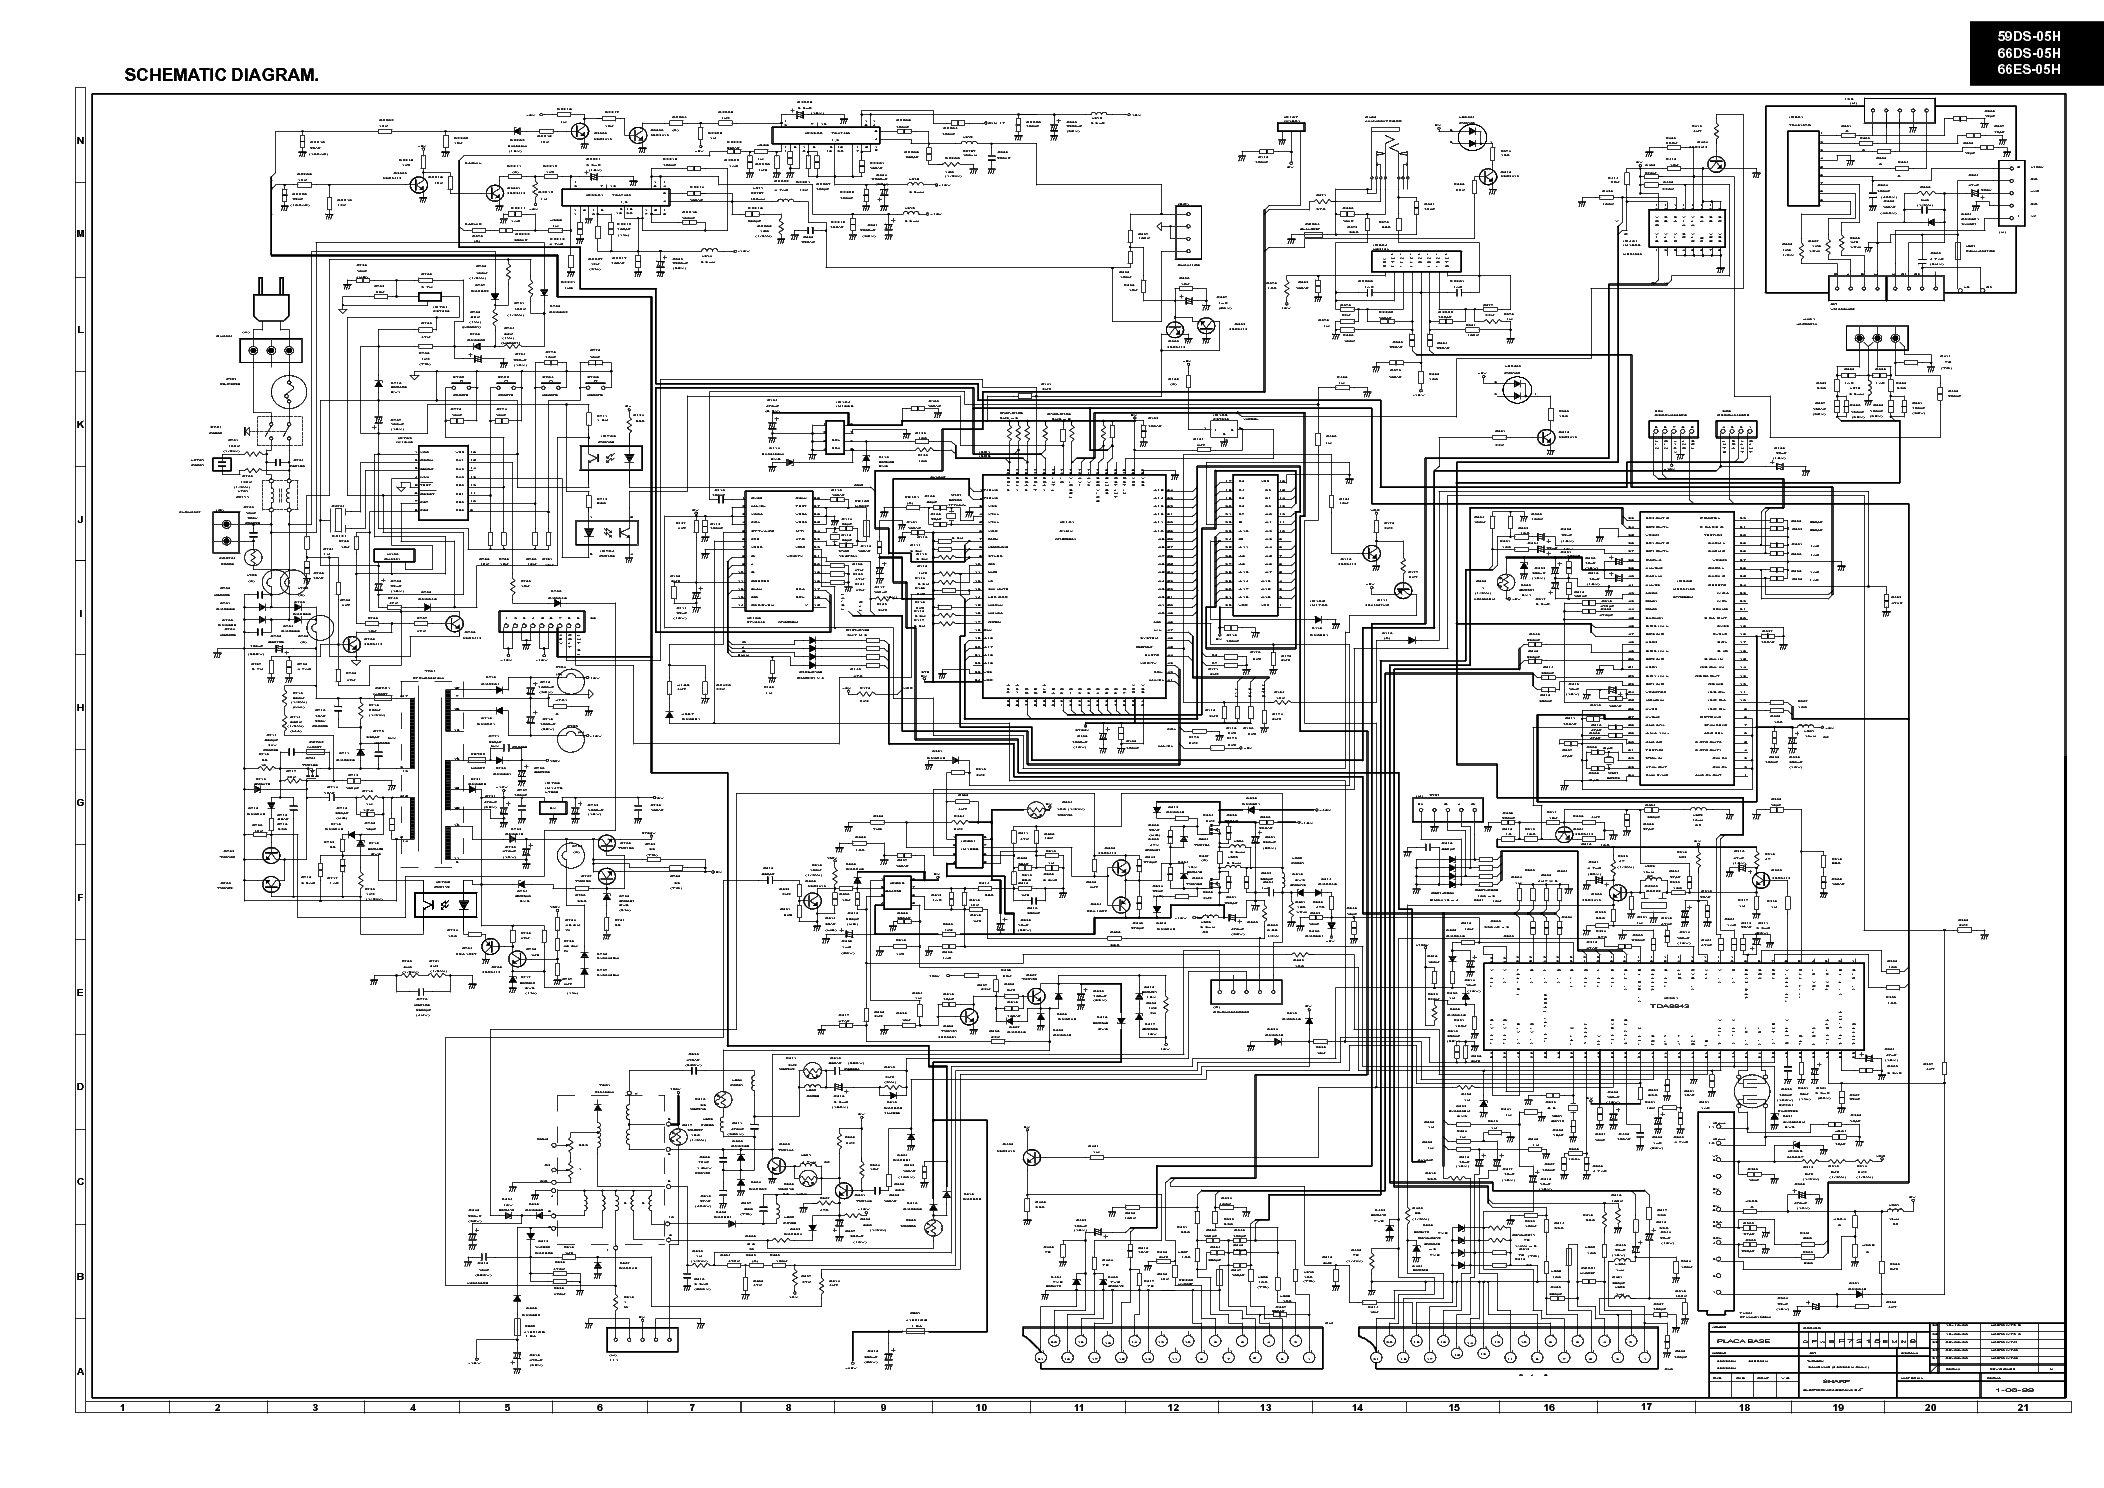 SHARP 59DS05 TV D Service Manual download, schematics